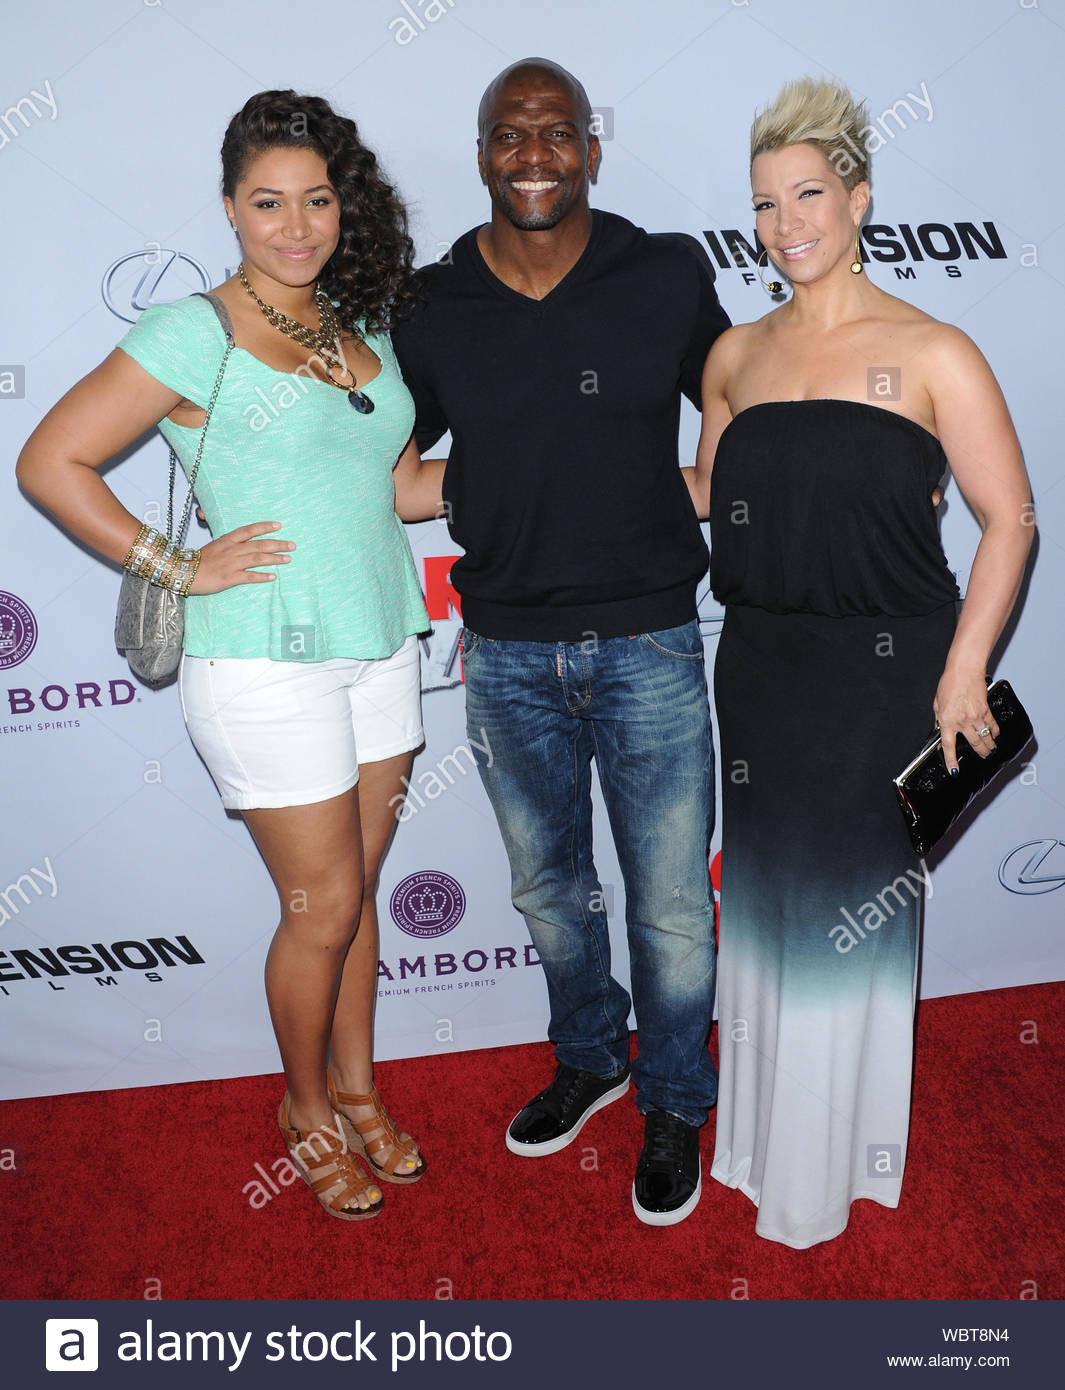 Hollywood Ca Part 2 Terry Crews His Daughter Azriel And Wife Rebecca Arrive At The Premiere